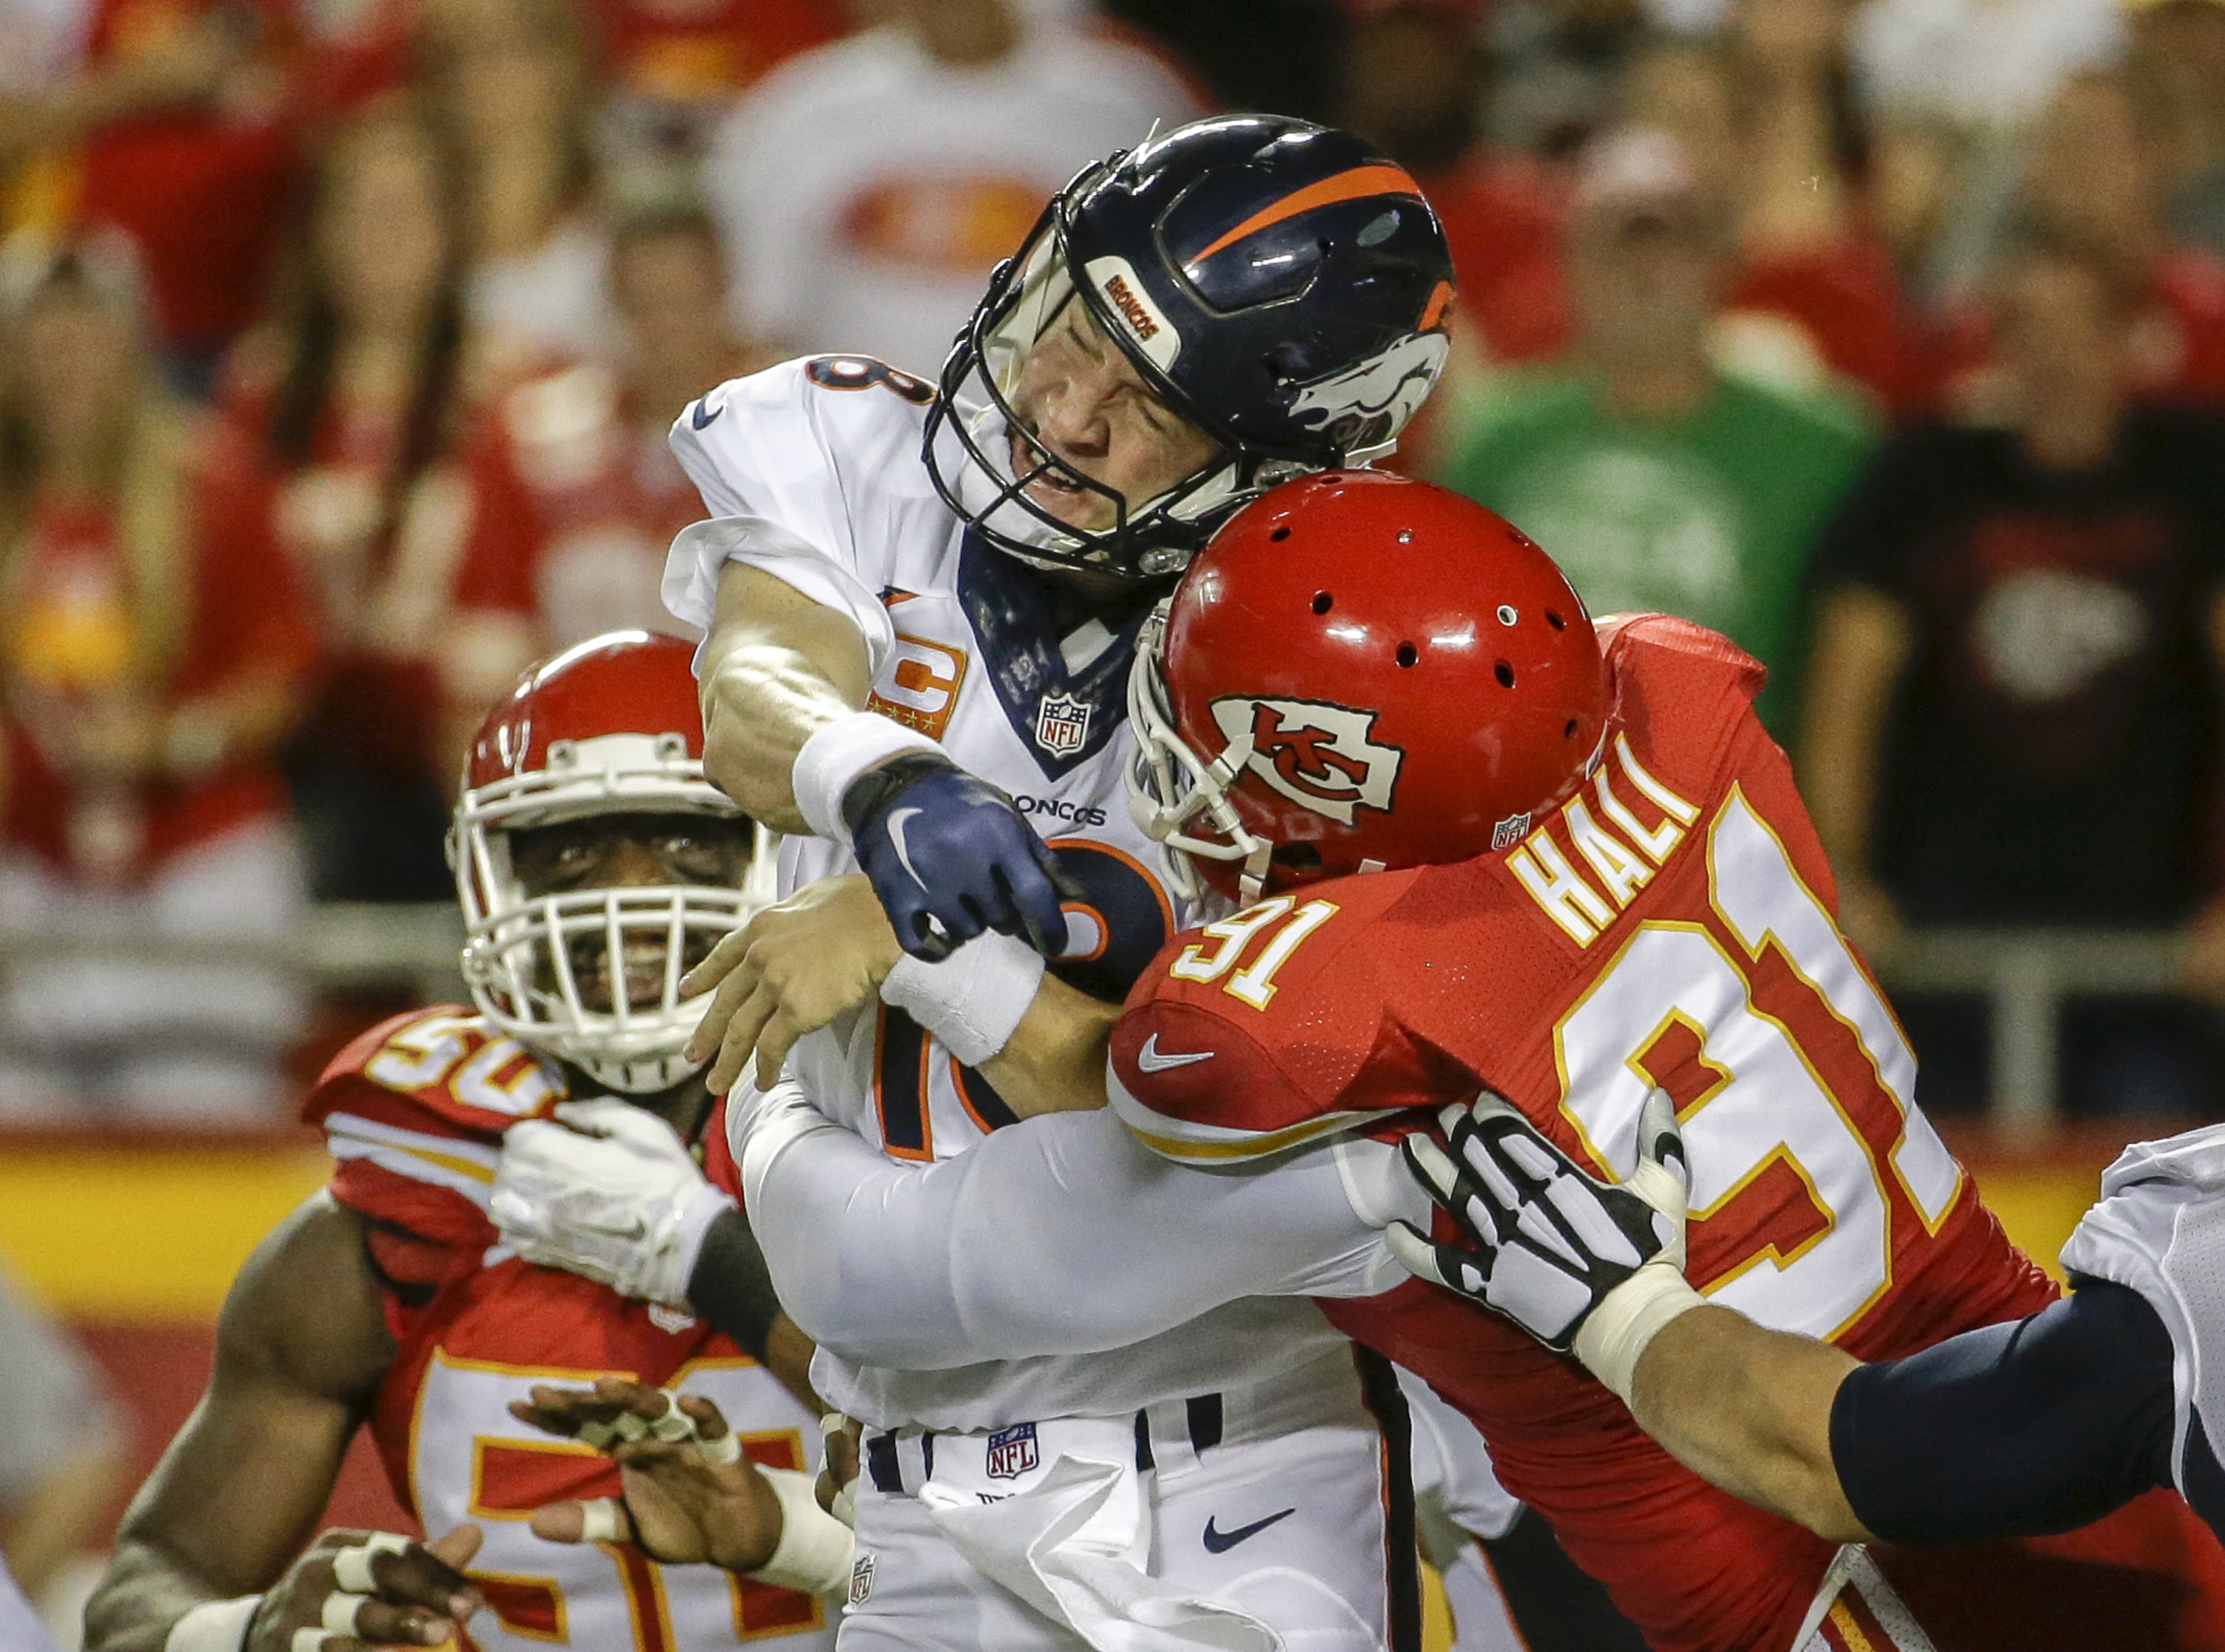 FILE - In this Sept. 17, 2015, file photo, Kansas City Chiefs linebacker Tamba Hali (91) makes contact with Denver Broncos quarterback Peyton Manning (18) after the throw, in the first half of an NFL football game in Kansas City, Mo. A person familiar wit